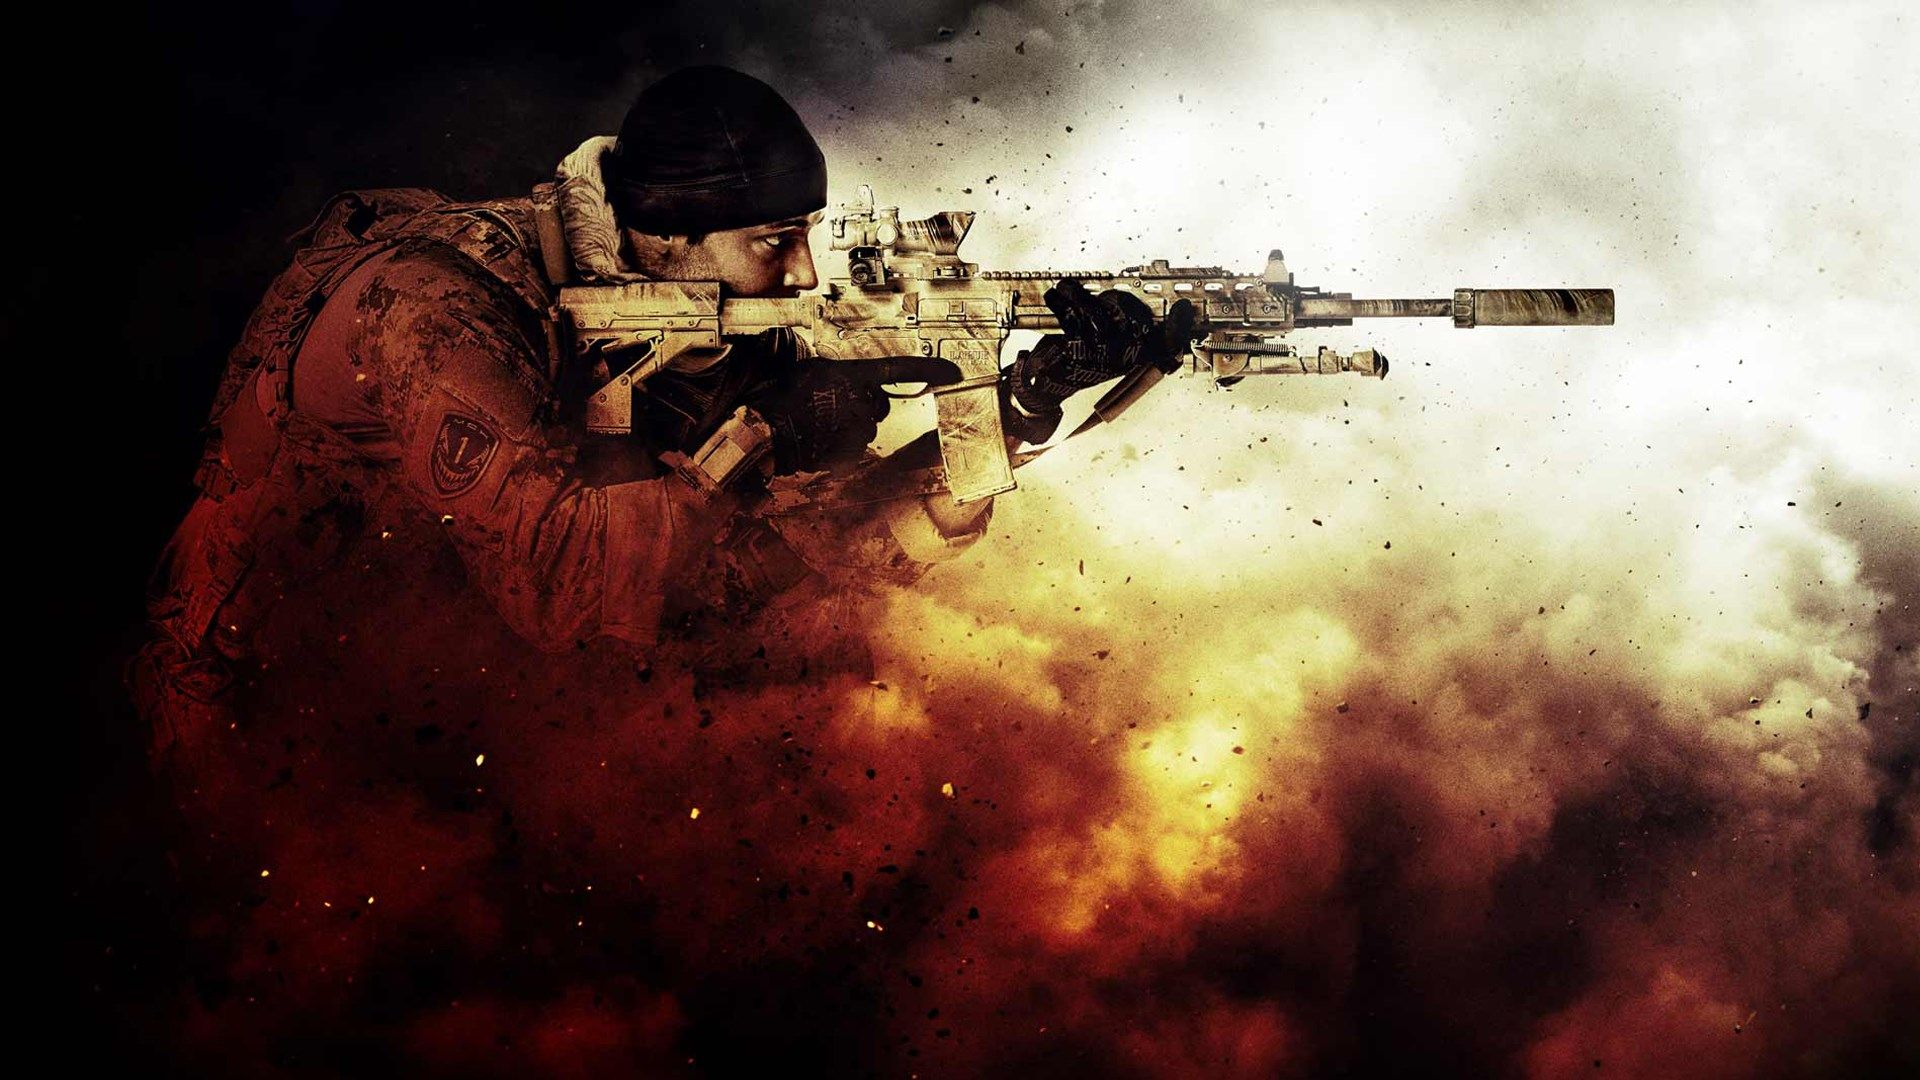 1920x1080 Medal Of Honor Warfighter Game Wallpaper Medals Honor